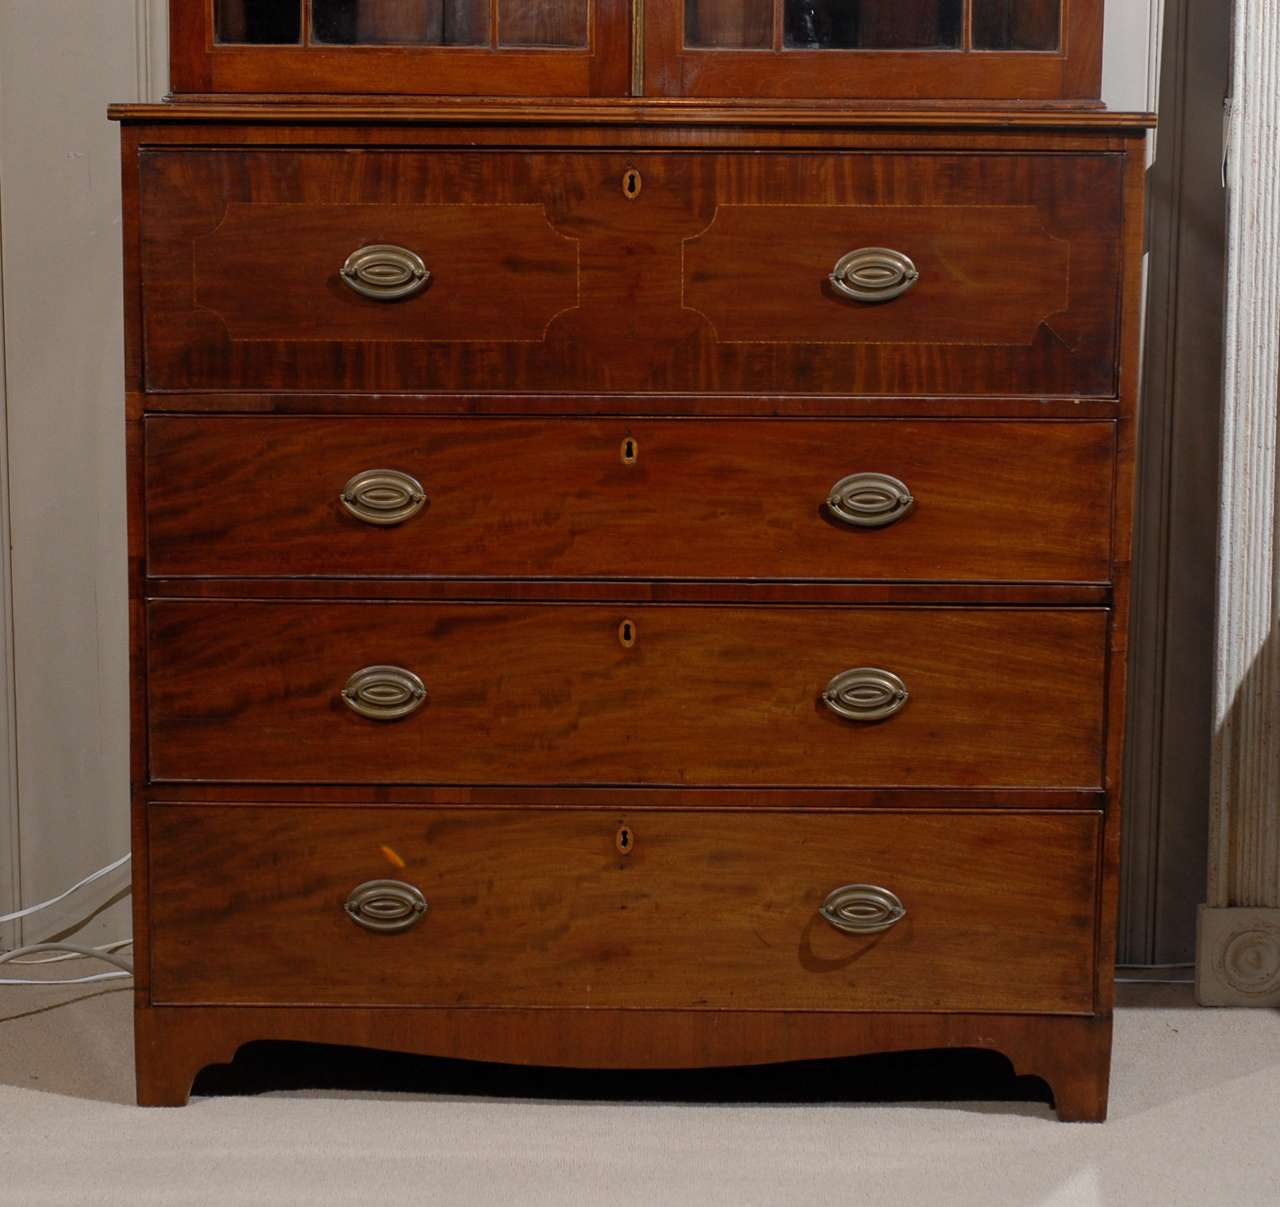 bureau book case secr taire for sale at 1stdibs. Black Bedroom Furniture Sets. Home Design Ideas